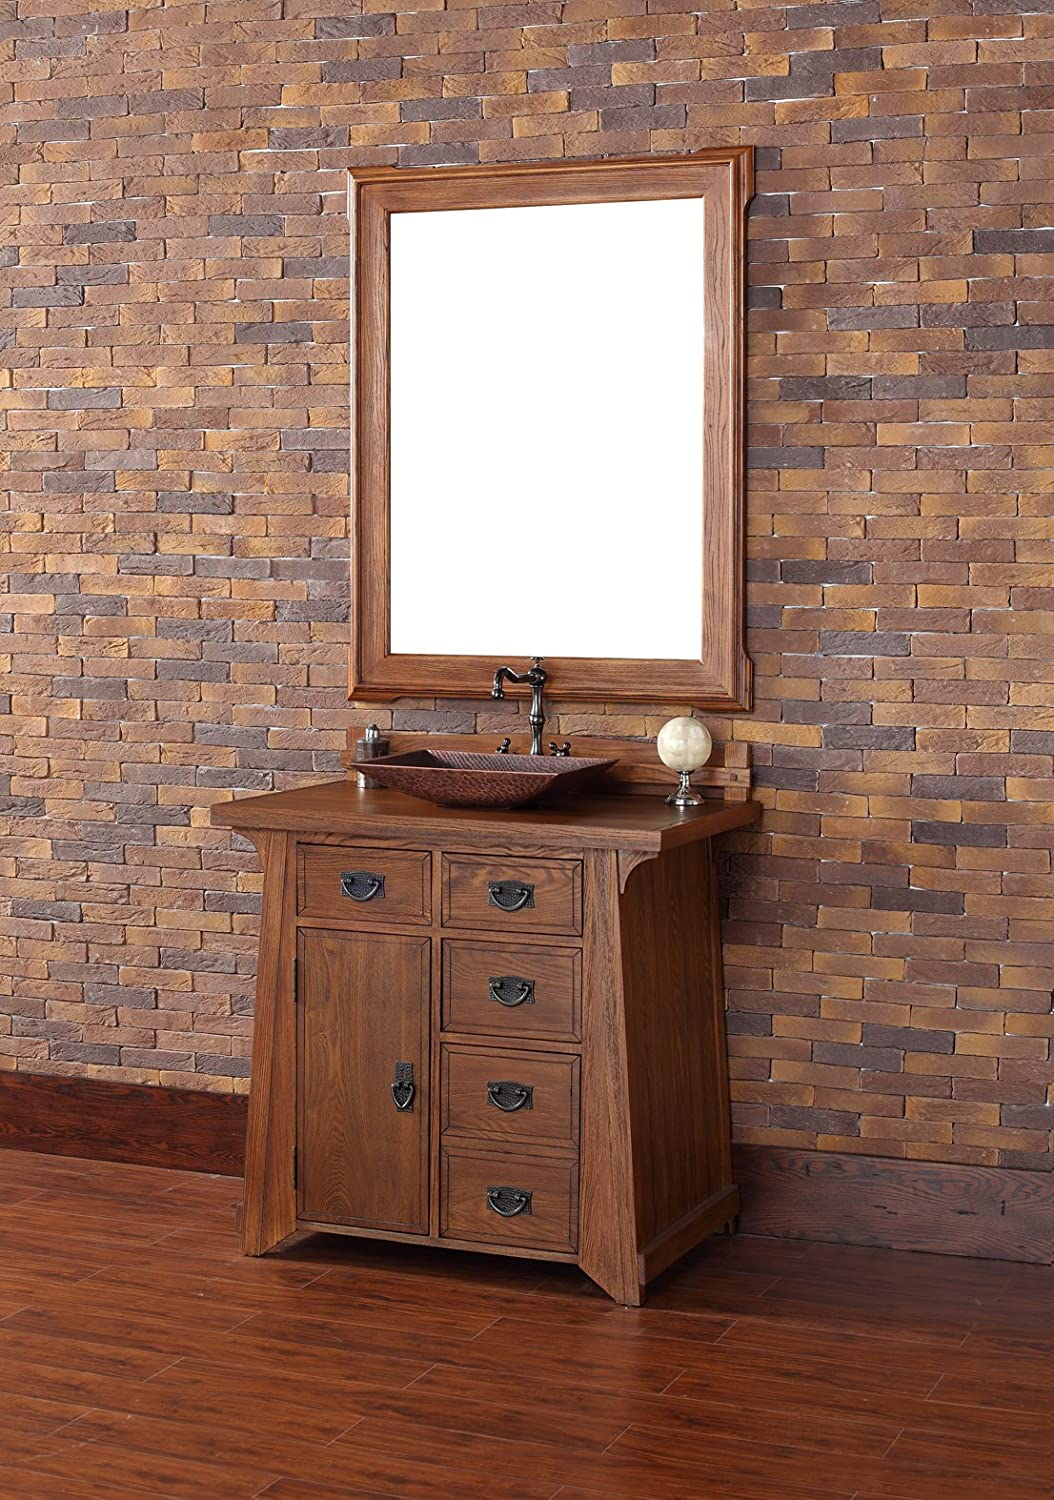 Single Vanity in Antique Oak Finish - - Amazon.com - 36 In. Single Vanity In Antique Oak Finish - - Amazon.com